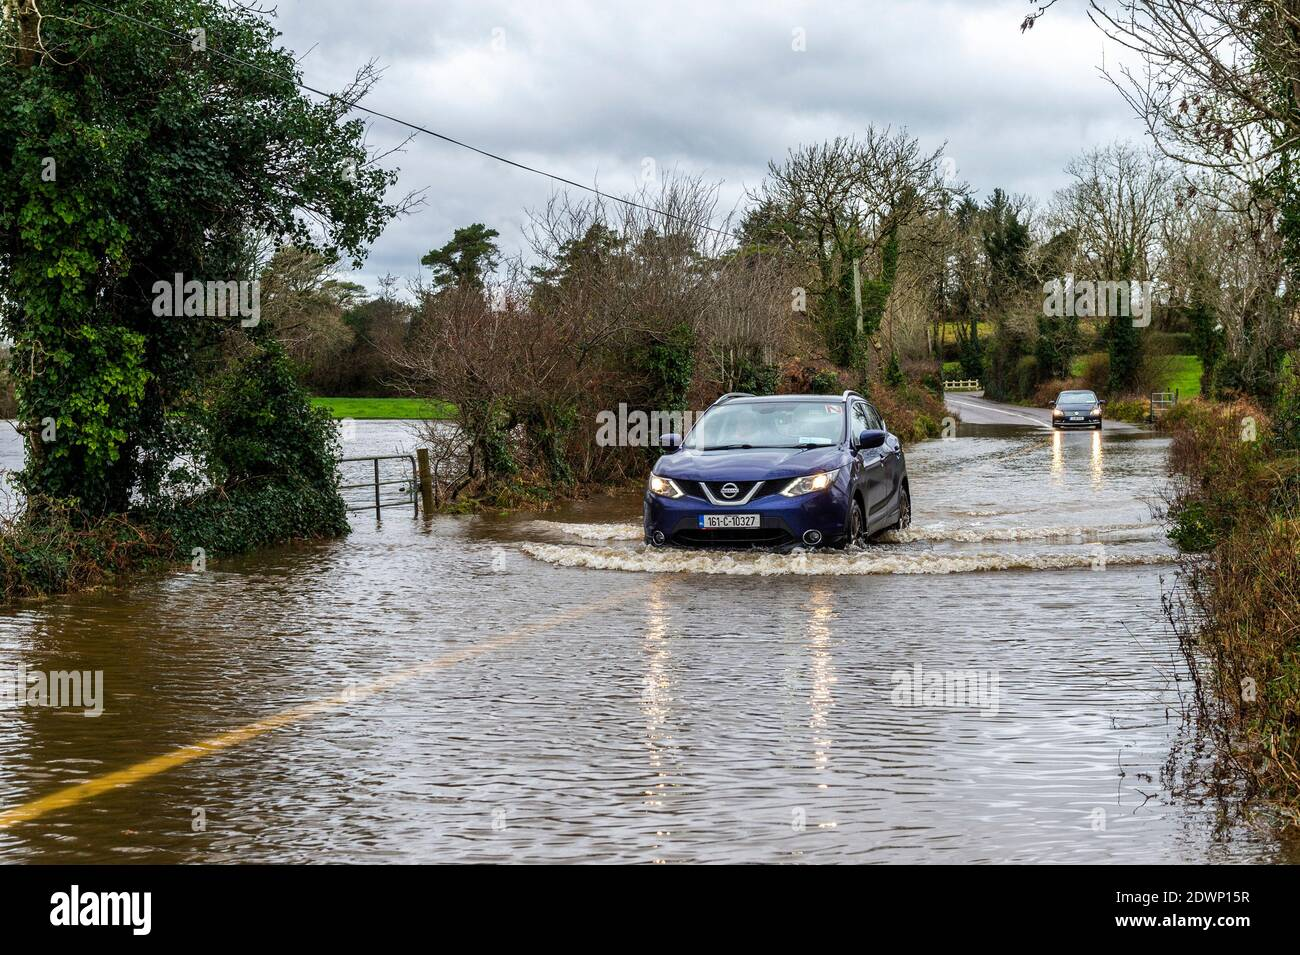 caheragh-west-cork-ireland-23rd-dec-2020-after-a-night-of-torrential-rain-the-river-ilen-burst-its-banks-at-caheragh-near-skibbereen-this-morning-causing-the-r594-road-to-flood-credit-ag-newsalamy-live-news-2DWP15R.jpg